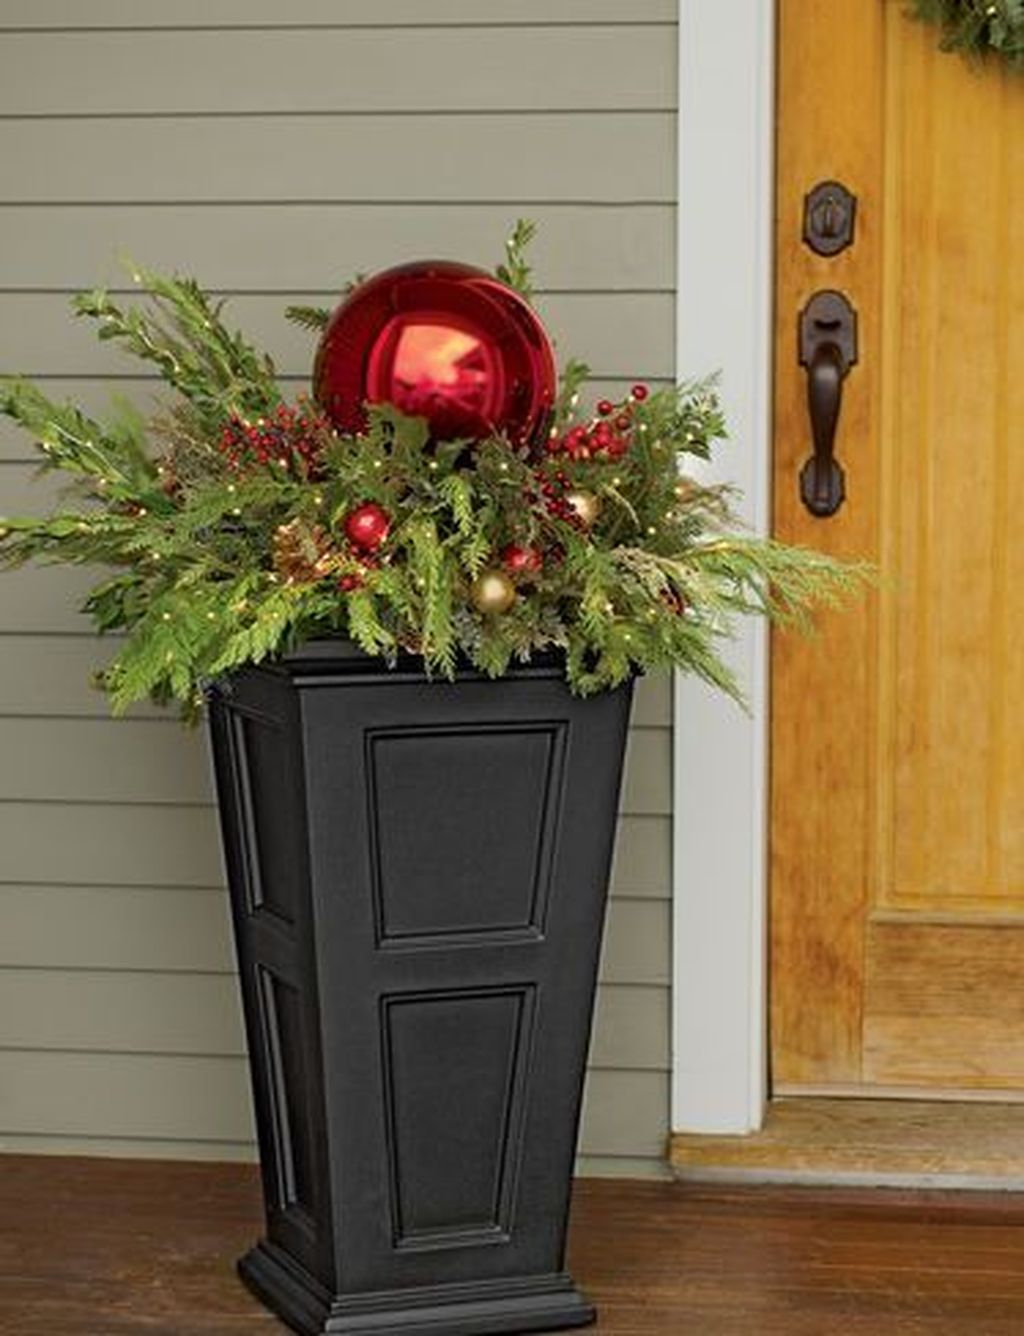 Marvelous Outdoor Holiday Planter Ideas To Beauty Porch Décor 26